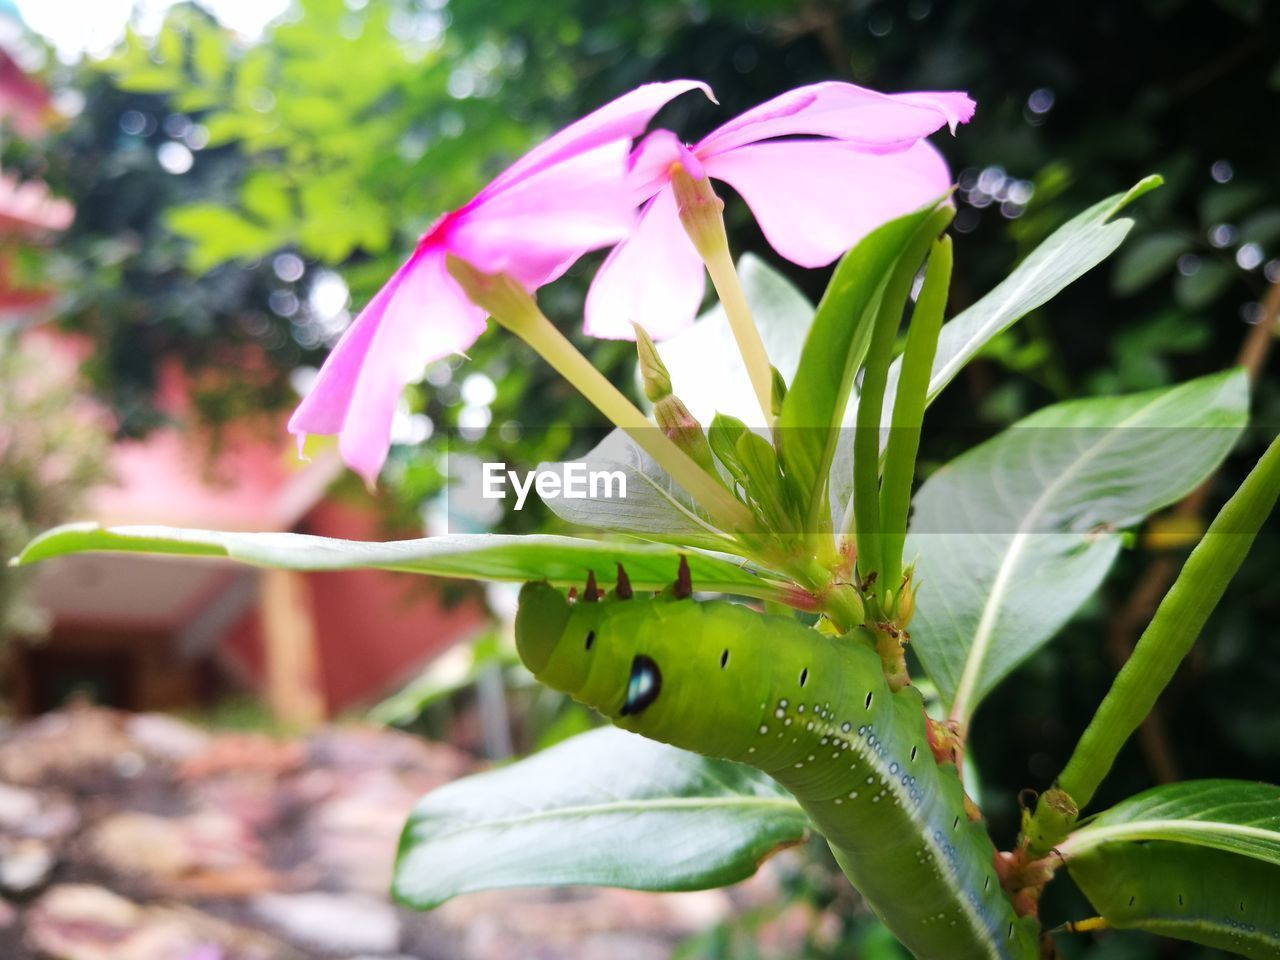 growth, flower, focus on foreground, nature, fragility, petal, day, plant, freshness, no people, outdoors, beauty in nature, close-up, leaf, flower head